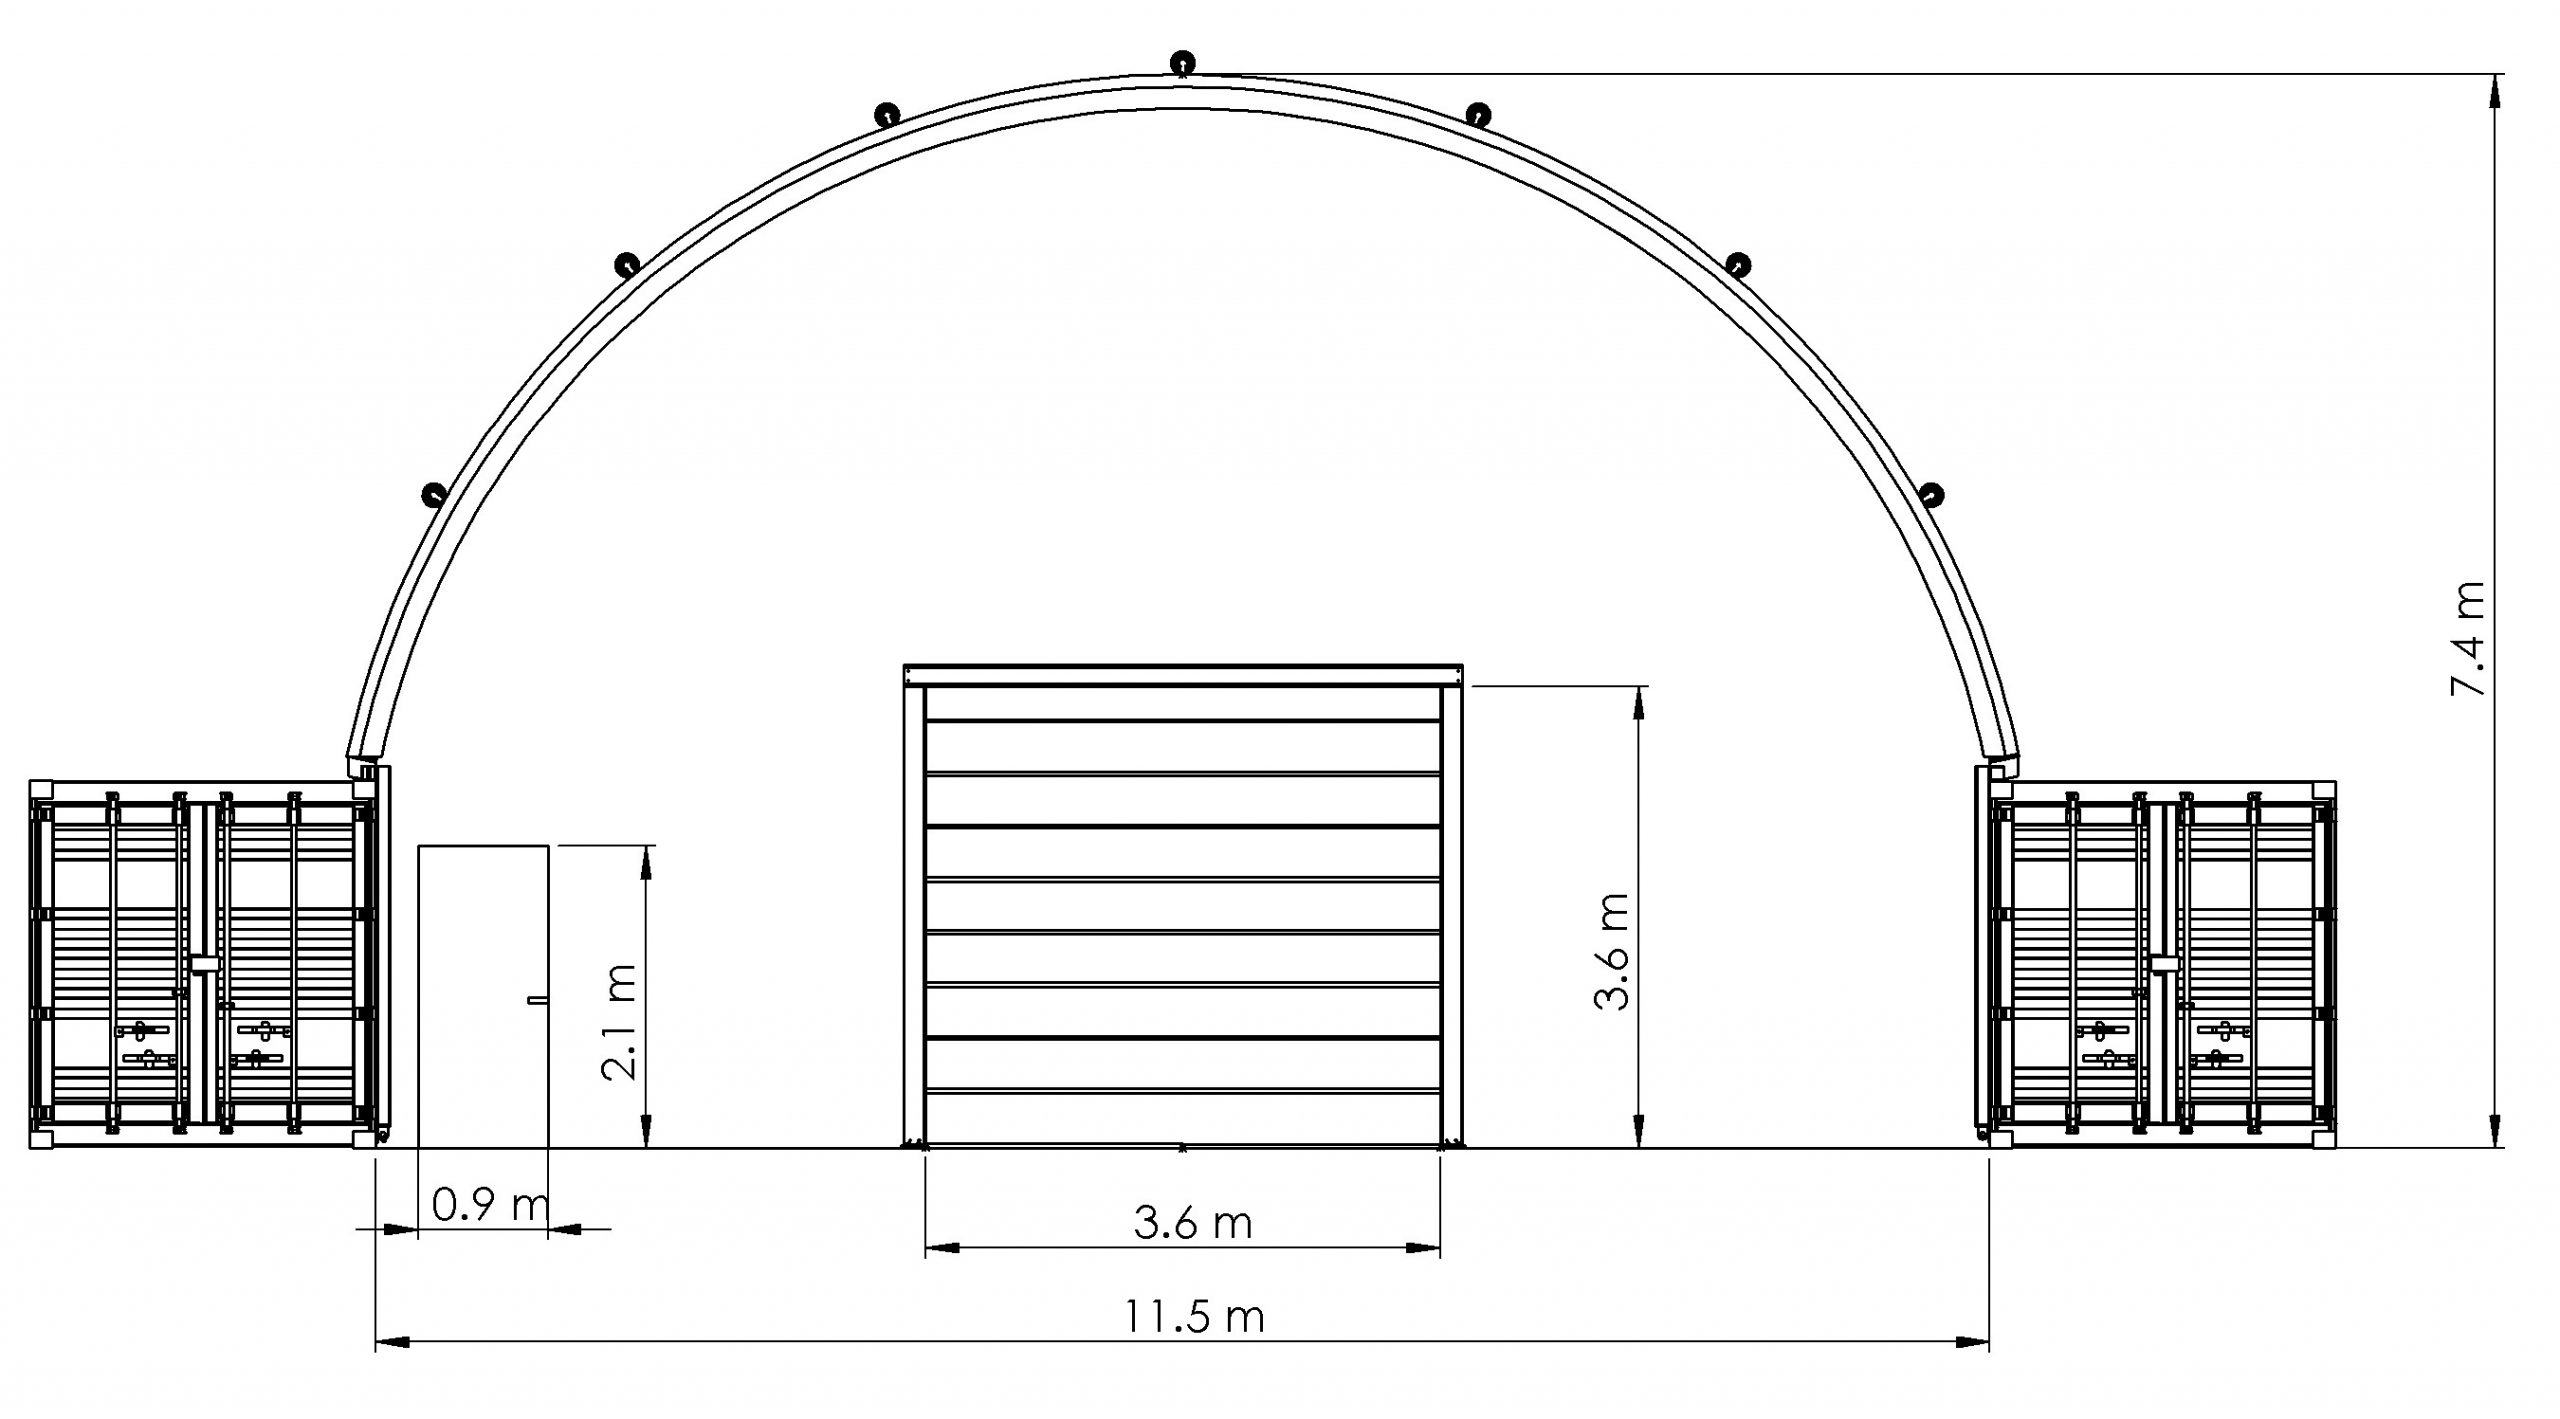 Container Building with Inflatable Roof - Elevation drawing